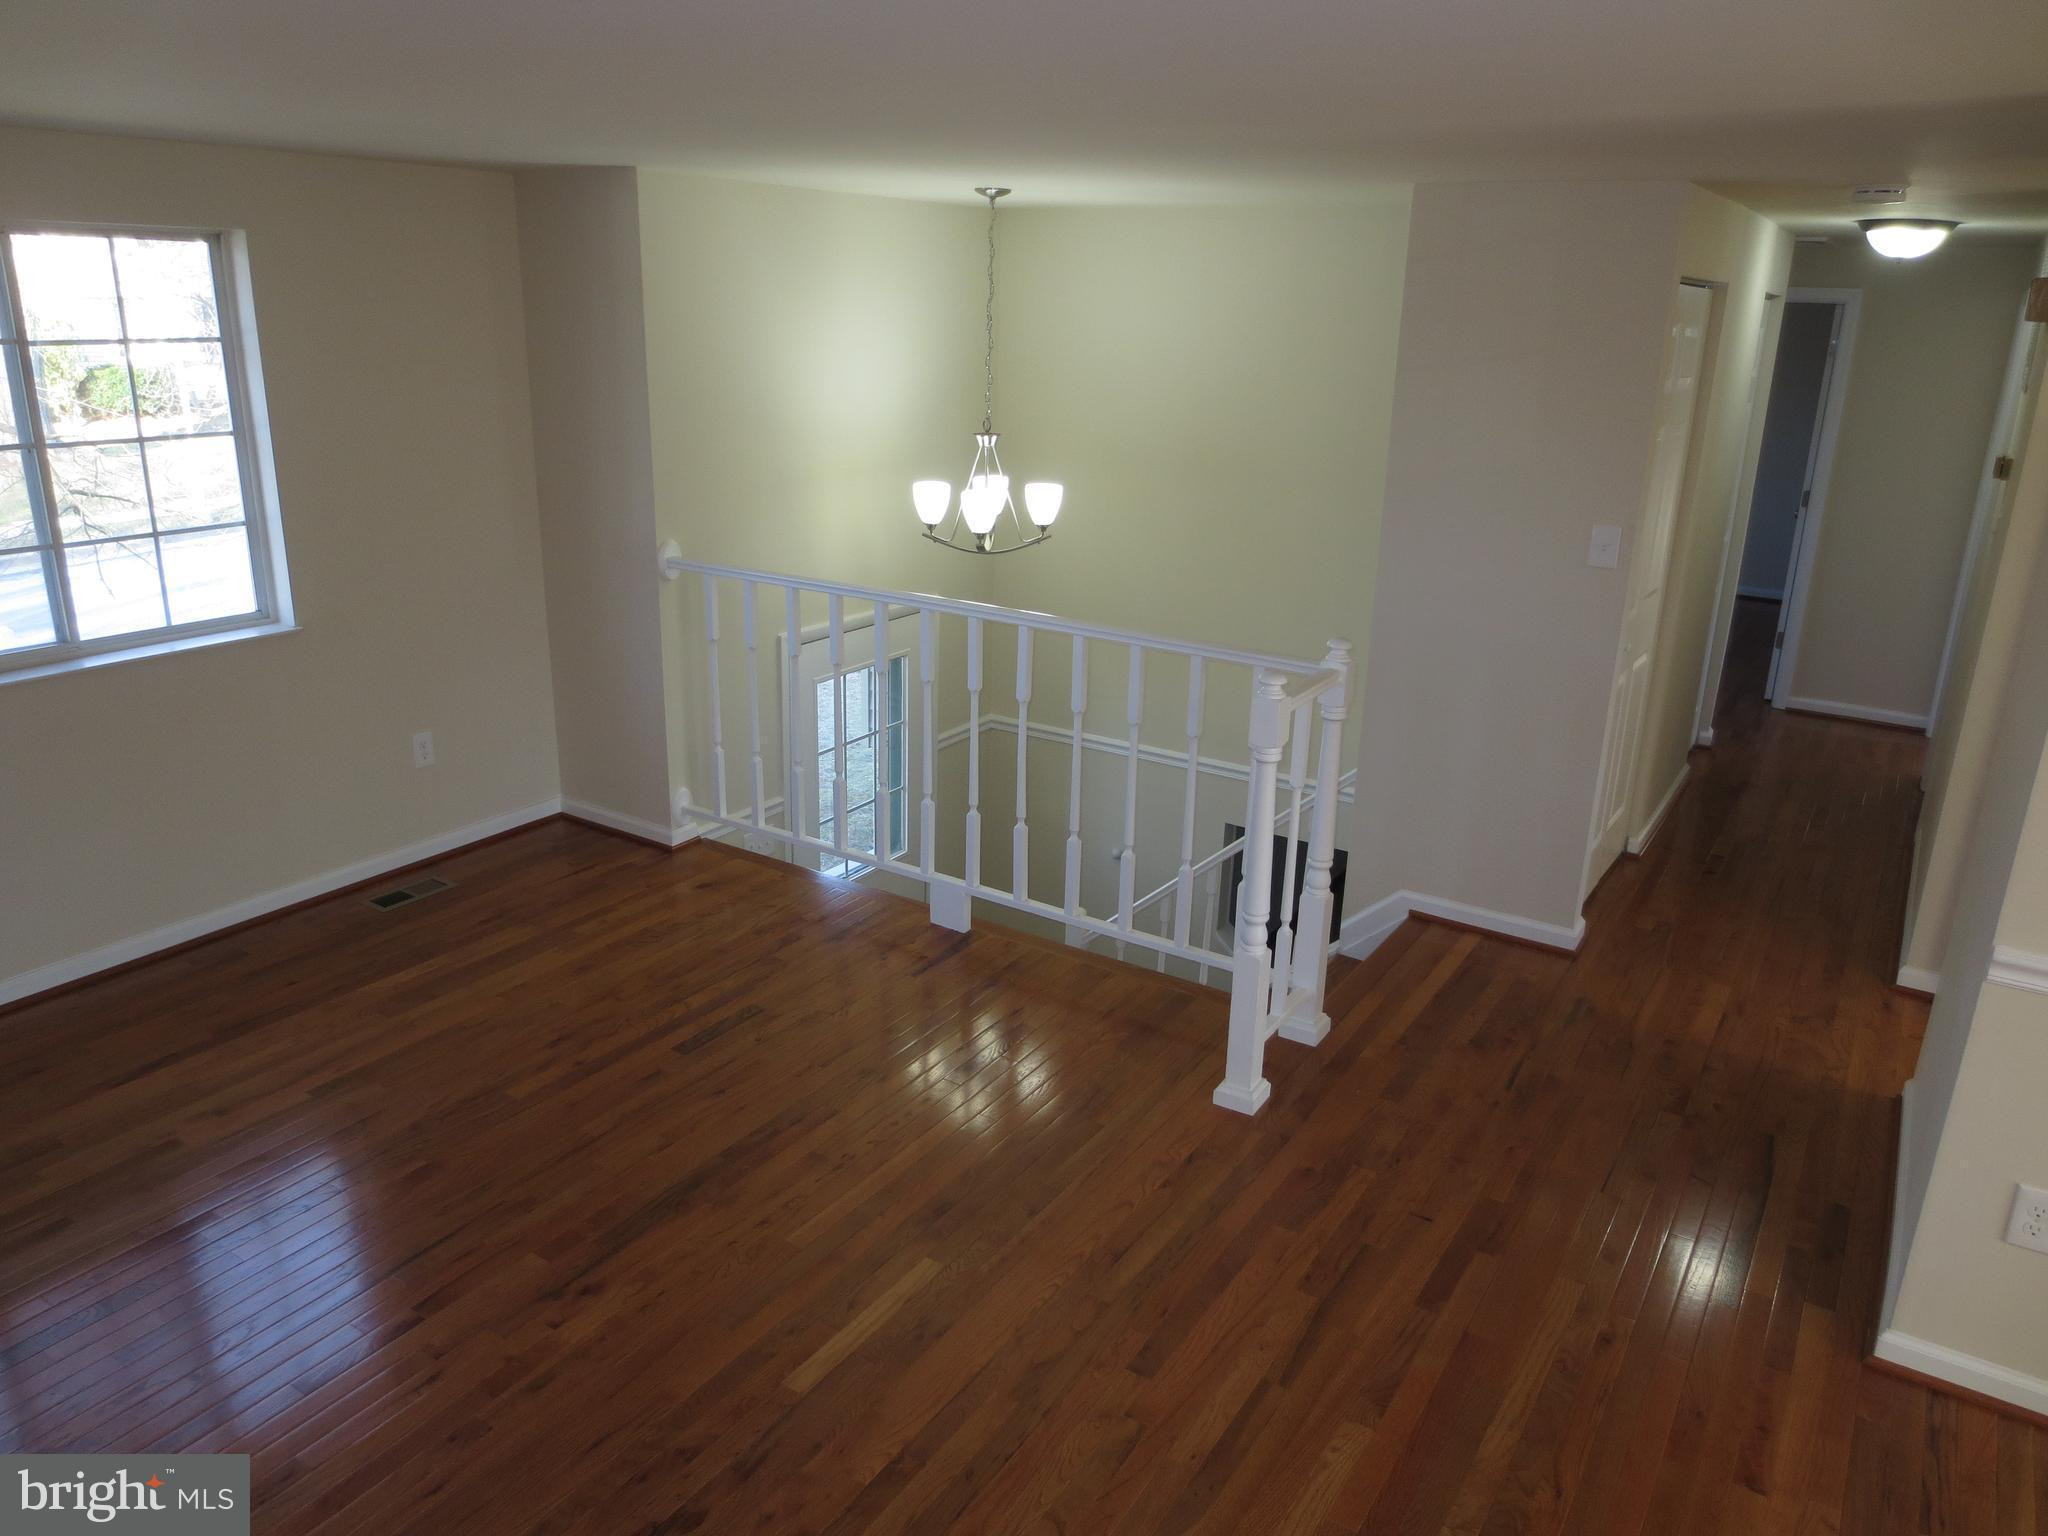 Hardwood Flooring Frederick Md Of A Residential for Sale for Sale at 1792 Harvest Dr Frederick Md Pertaining to A Residential for Sale for Sale at 1792 Harvest Dr Frederick Md 21702 Frederick Md 21702